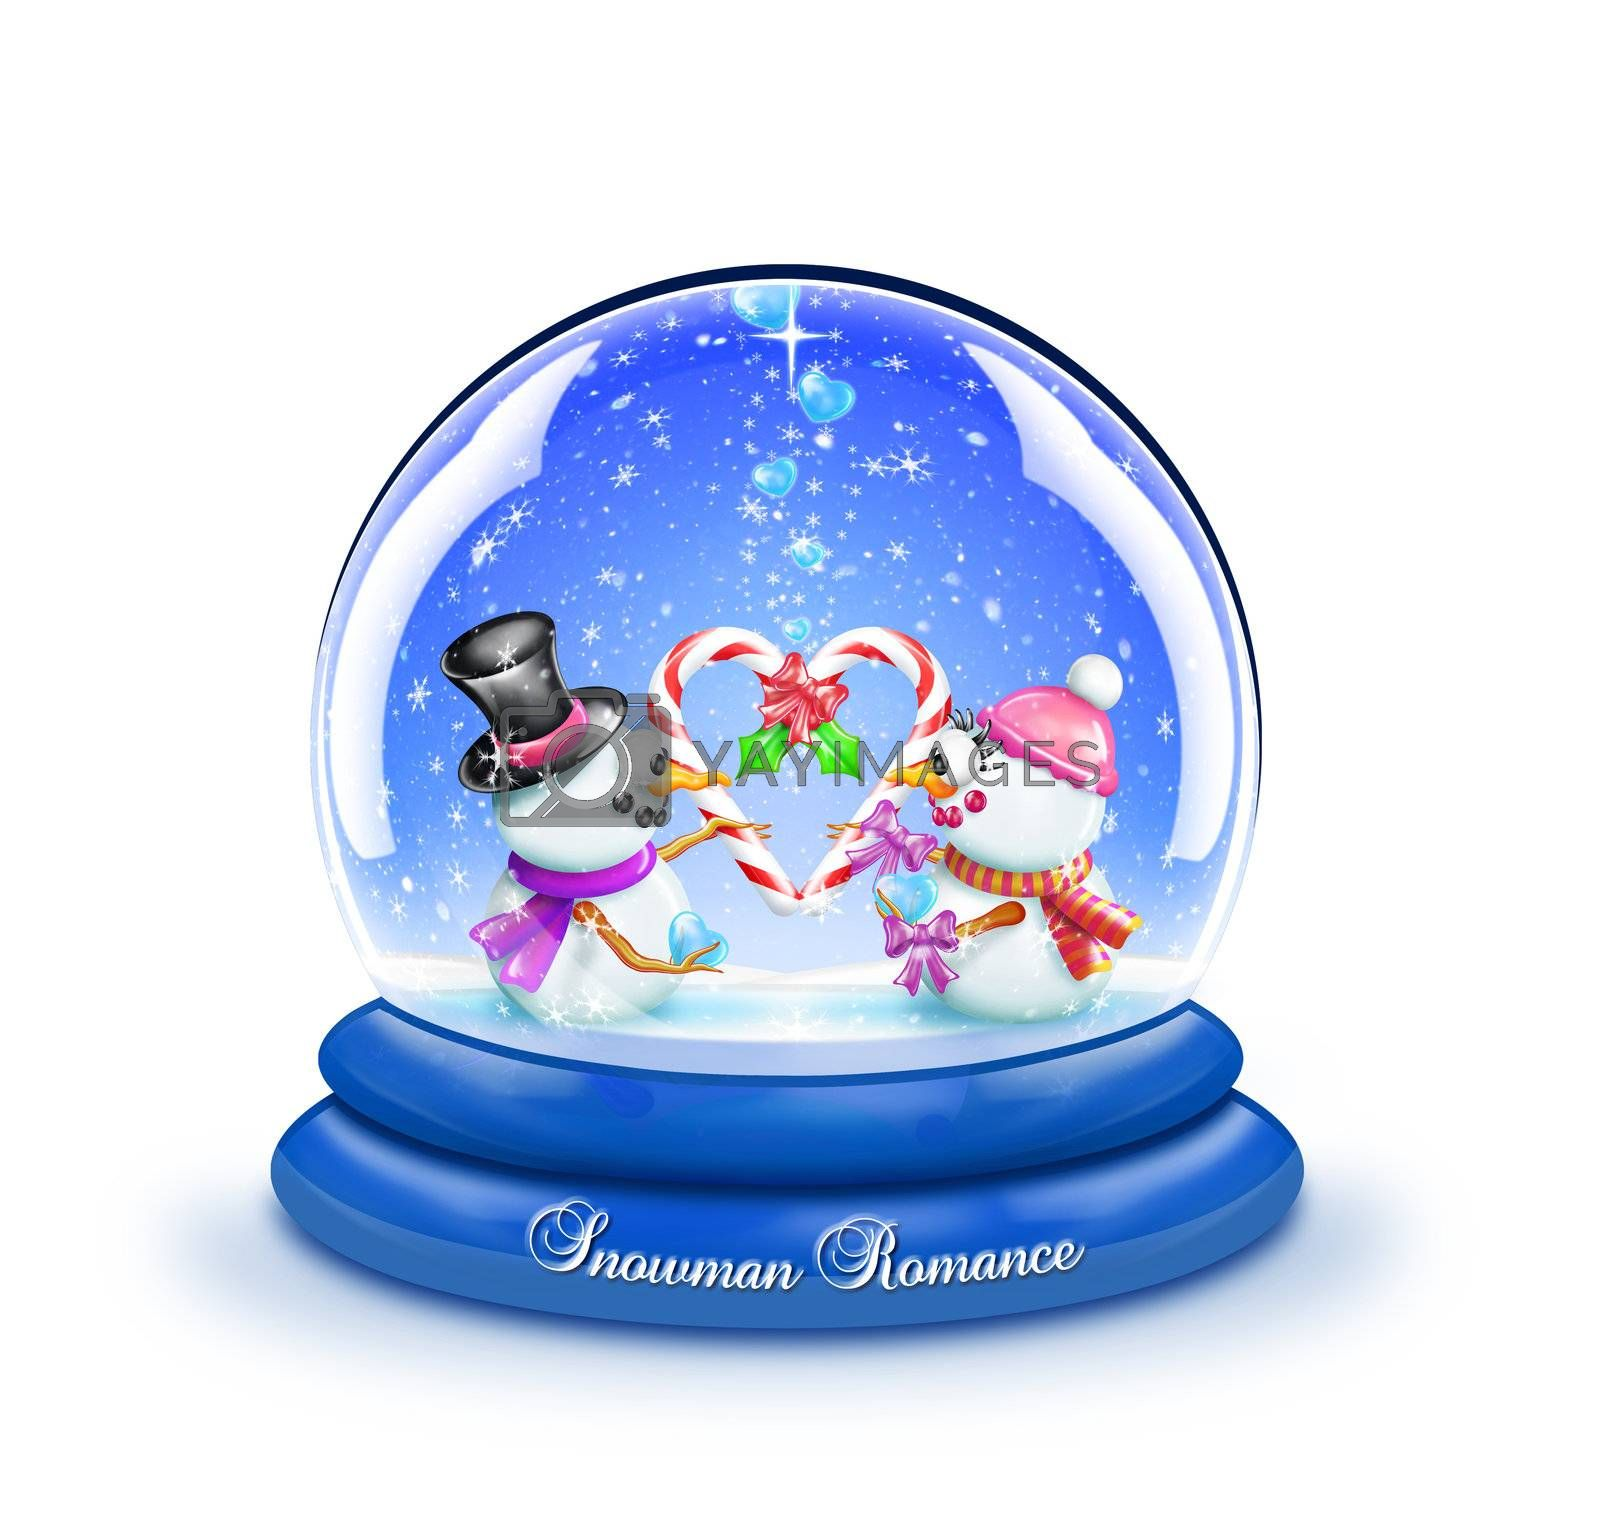 A snow globe with two snowmen holding candy canes in the shape of a heart.